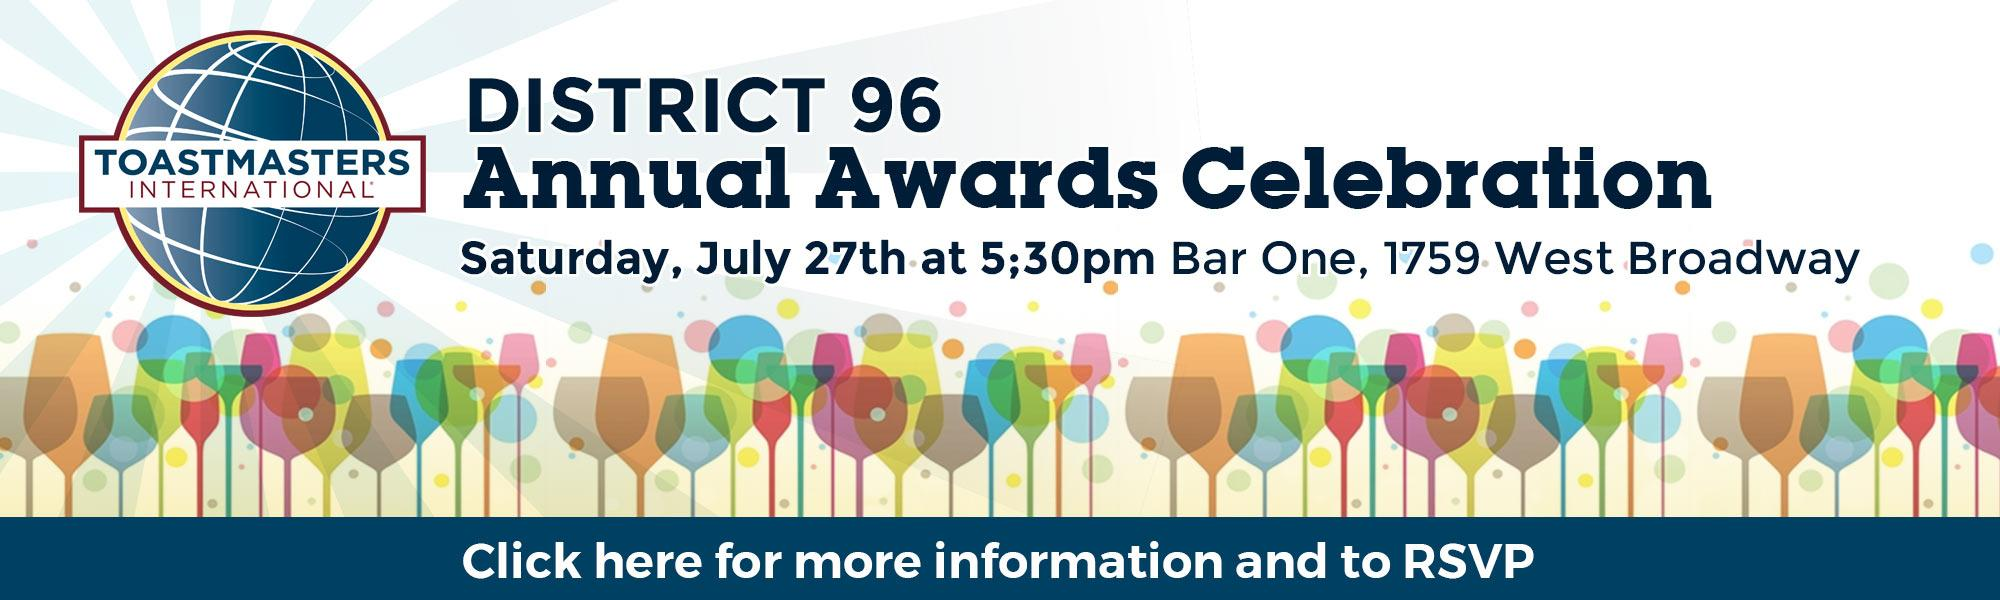 District 96 Awards Night. Click banner to RSVP and more information